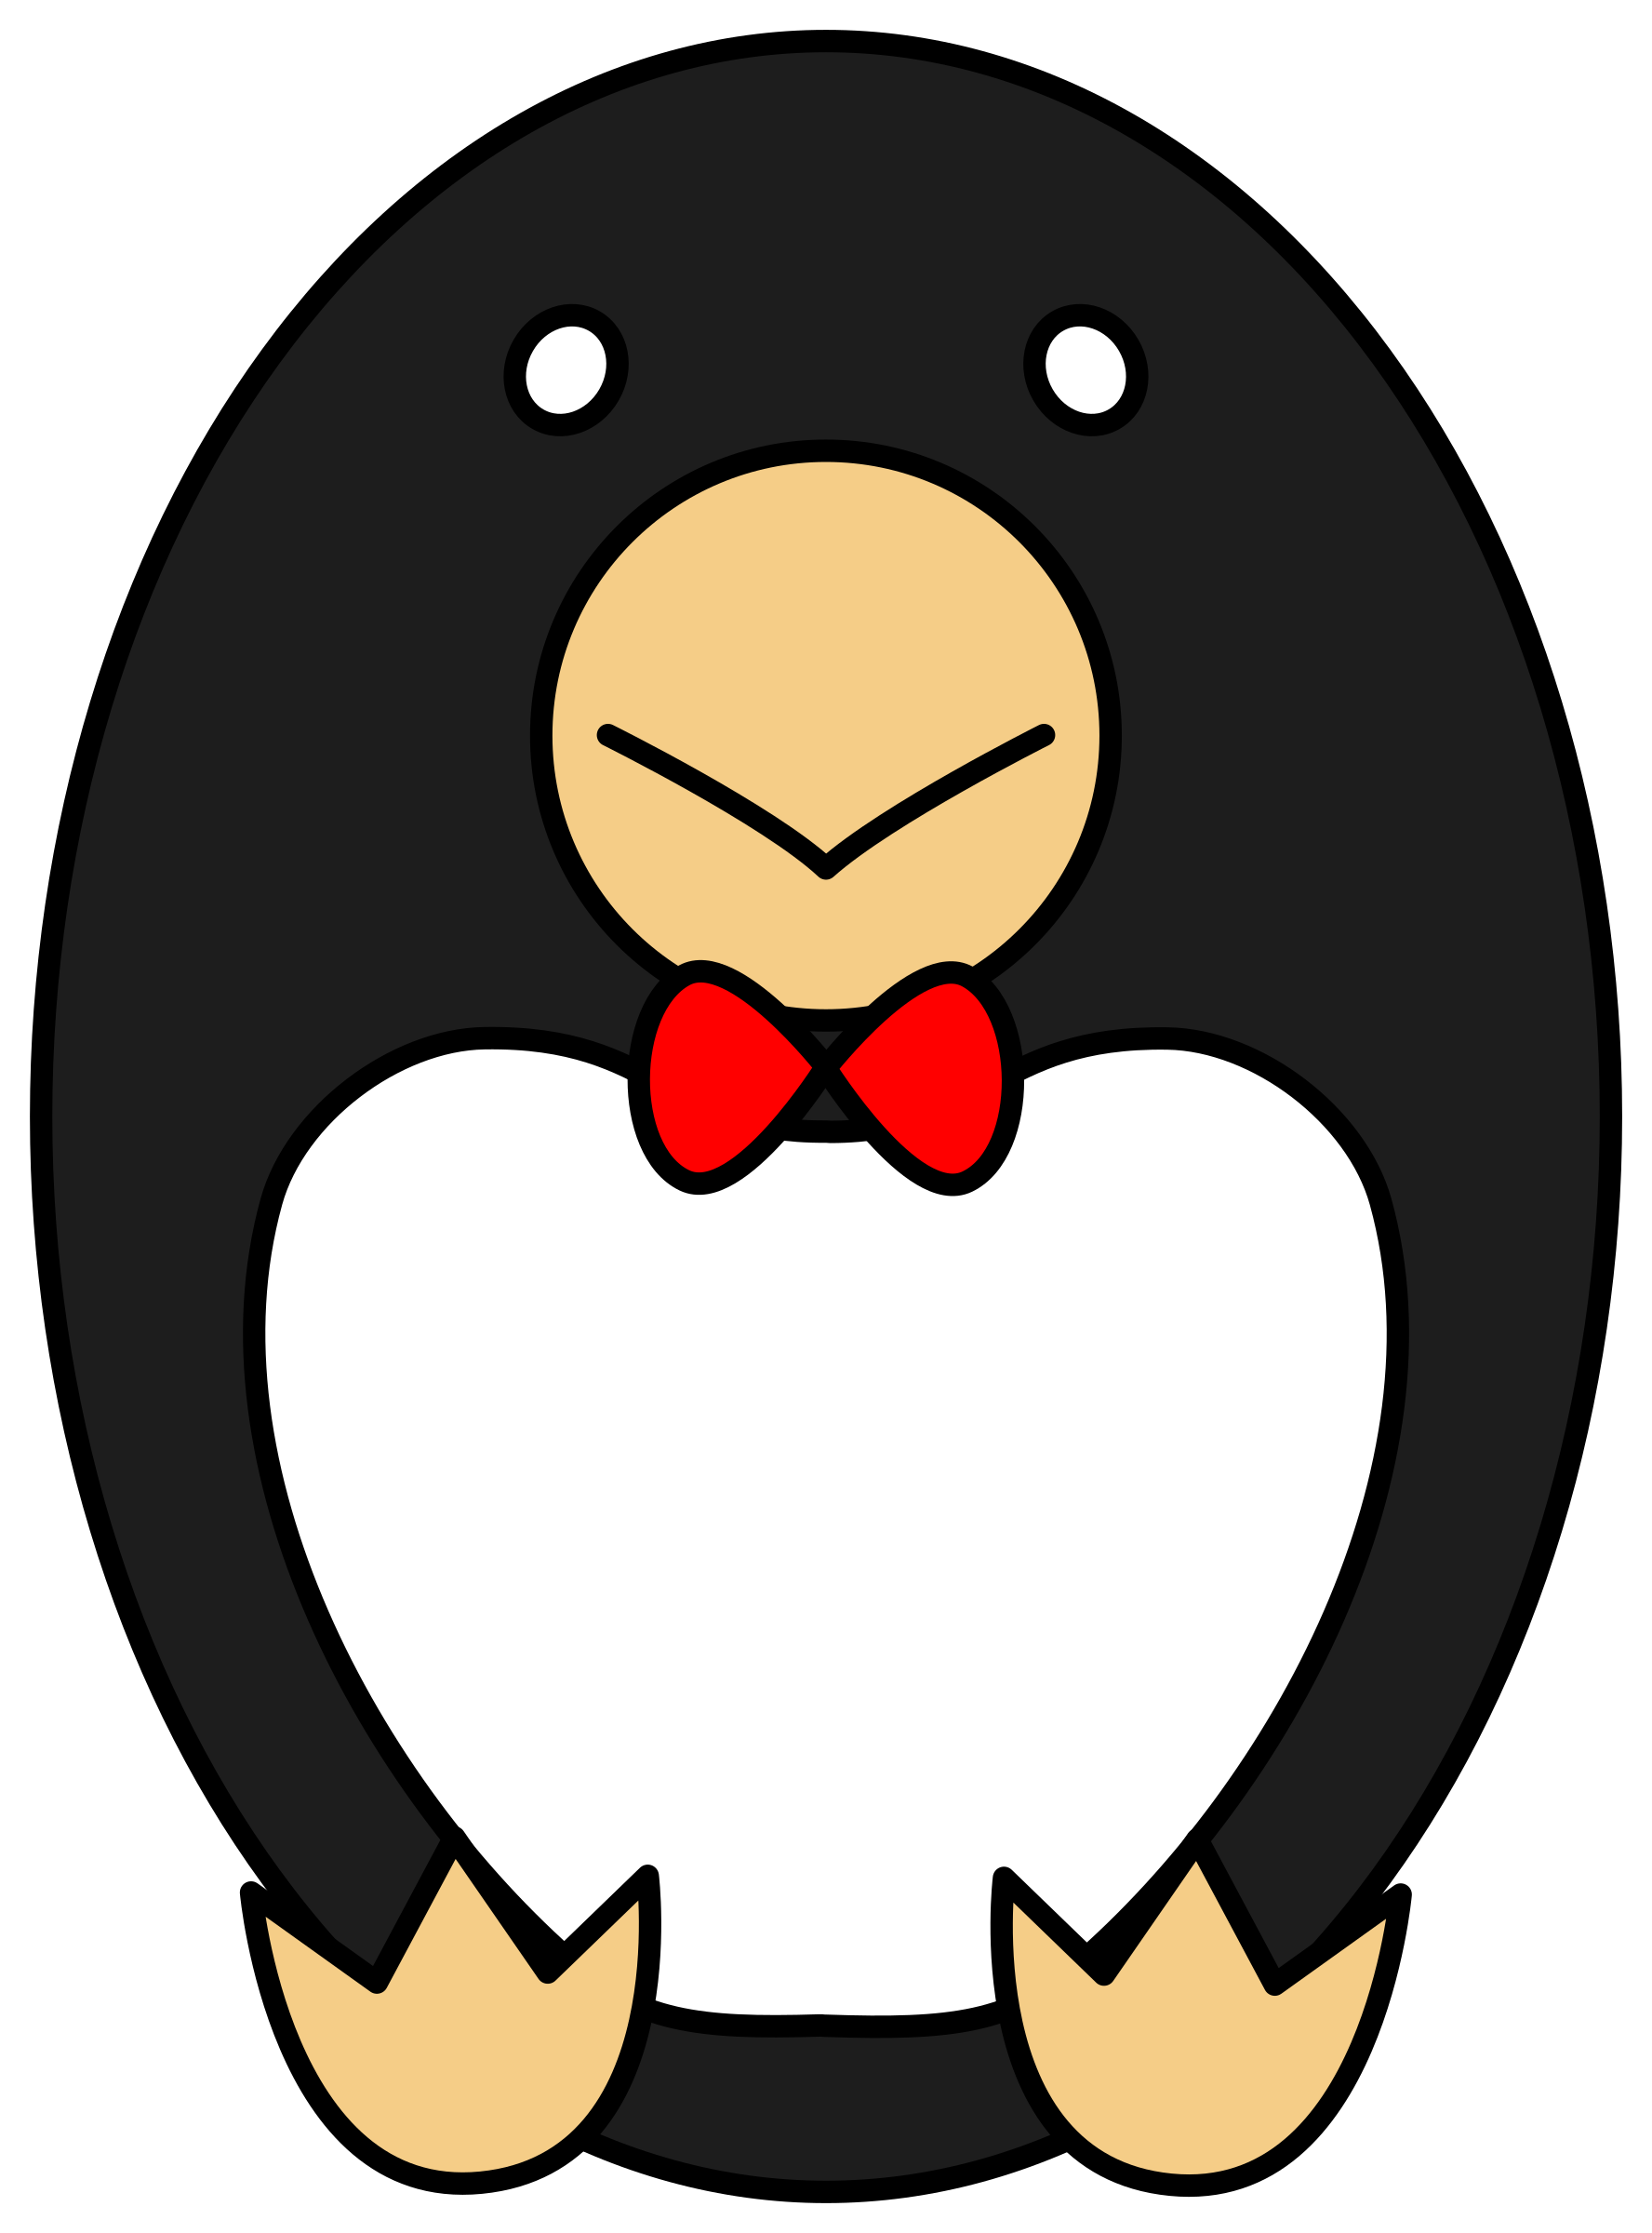 ranze penguin by Fabuio